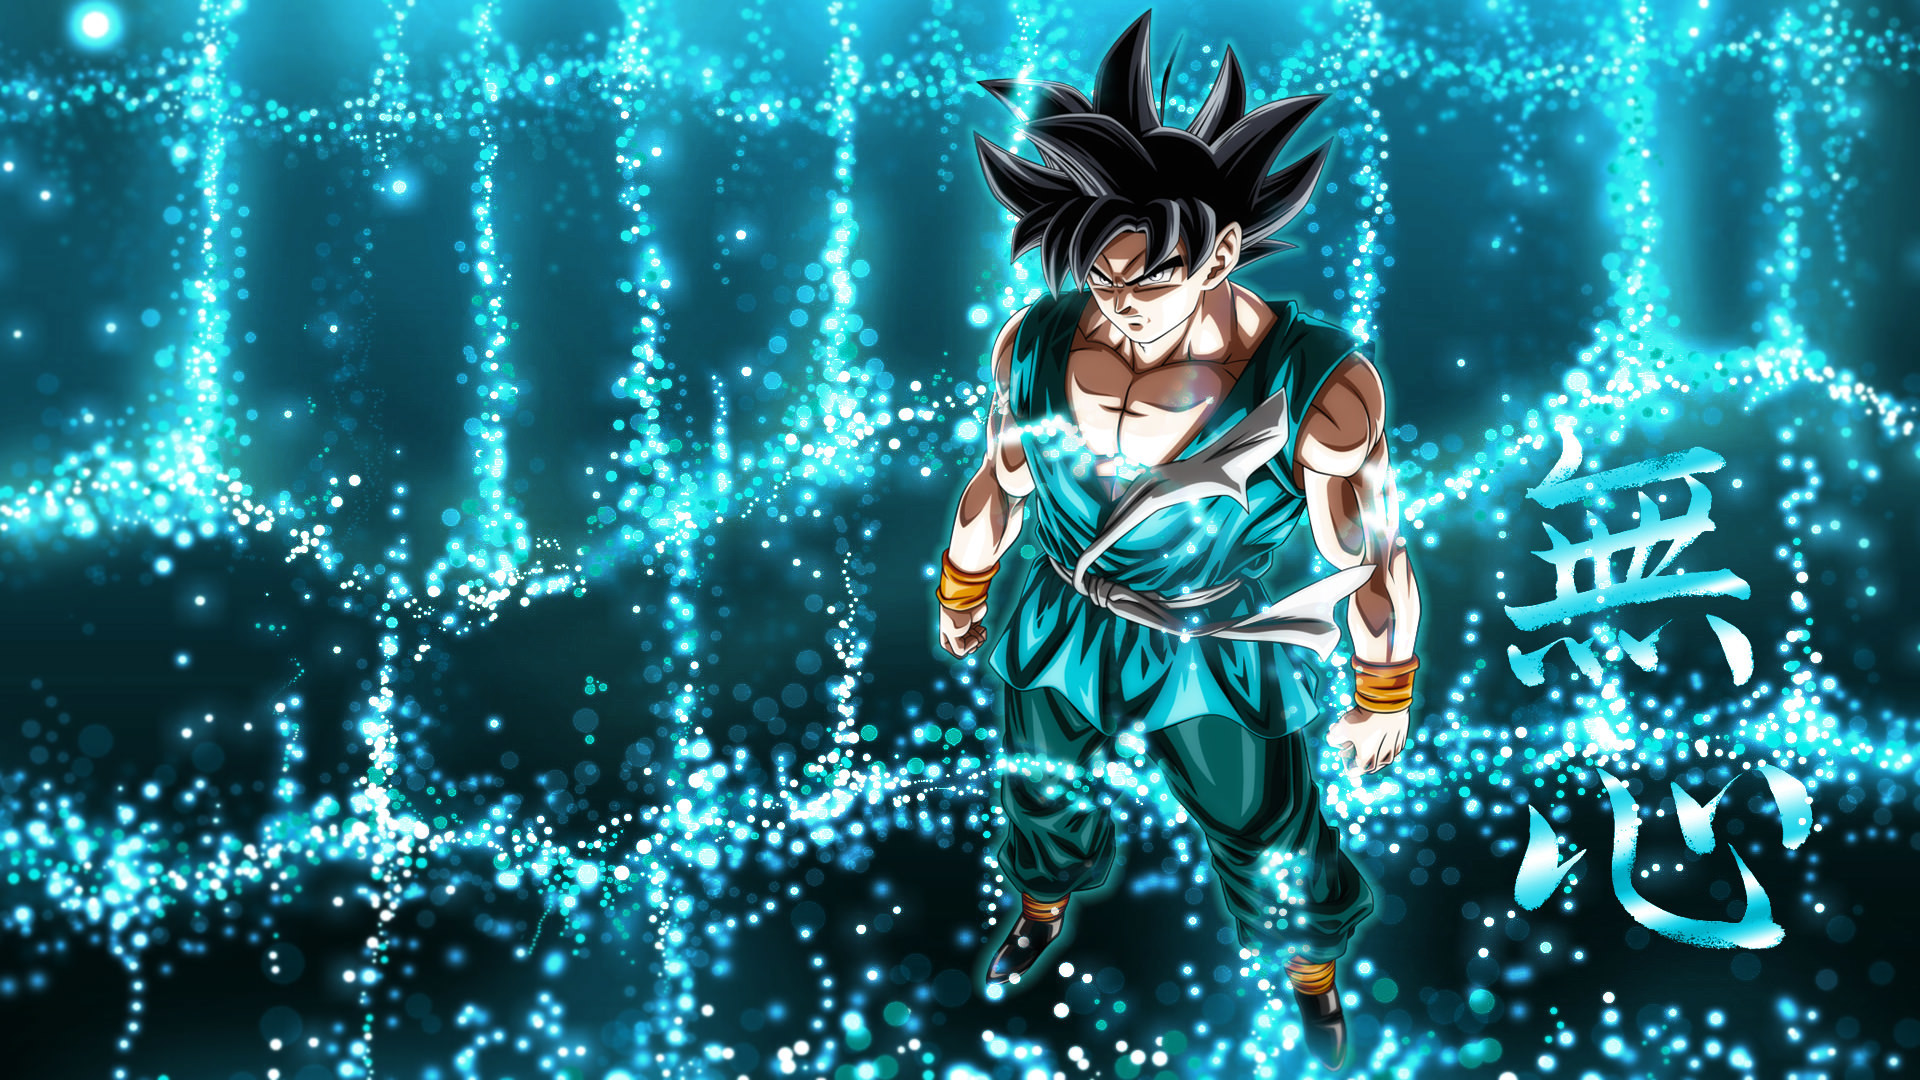 1920x1080 hd dbz wallpaper hd desktop wallpapers amazing images background photos 1080p free images widescreen high quality colourful 1920×1080 Wallpaper ...